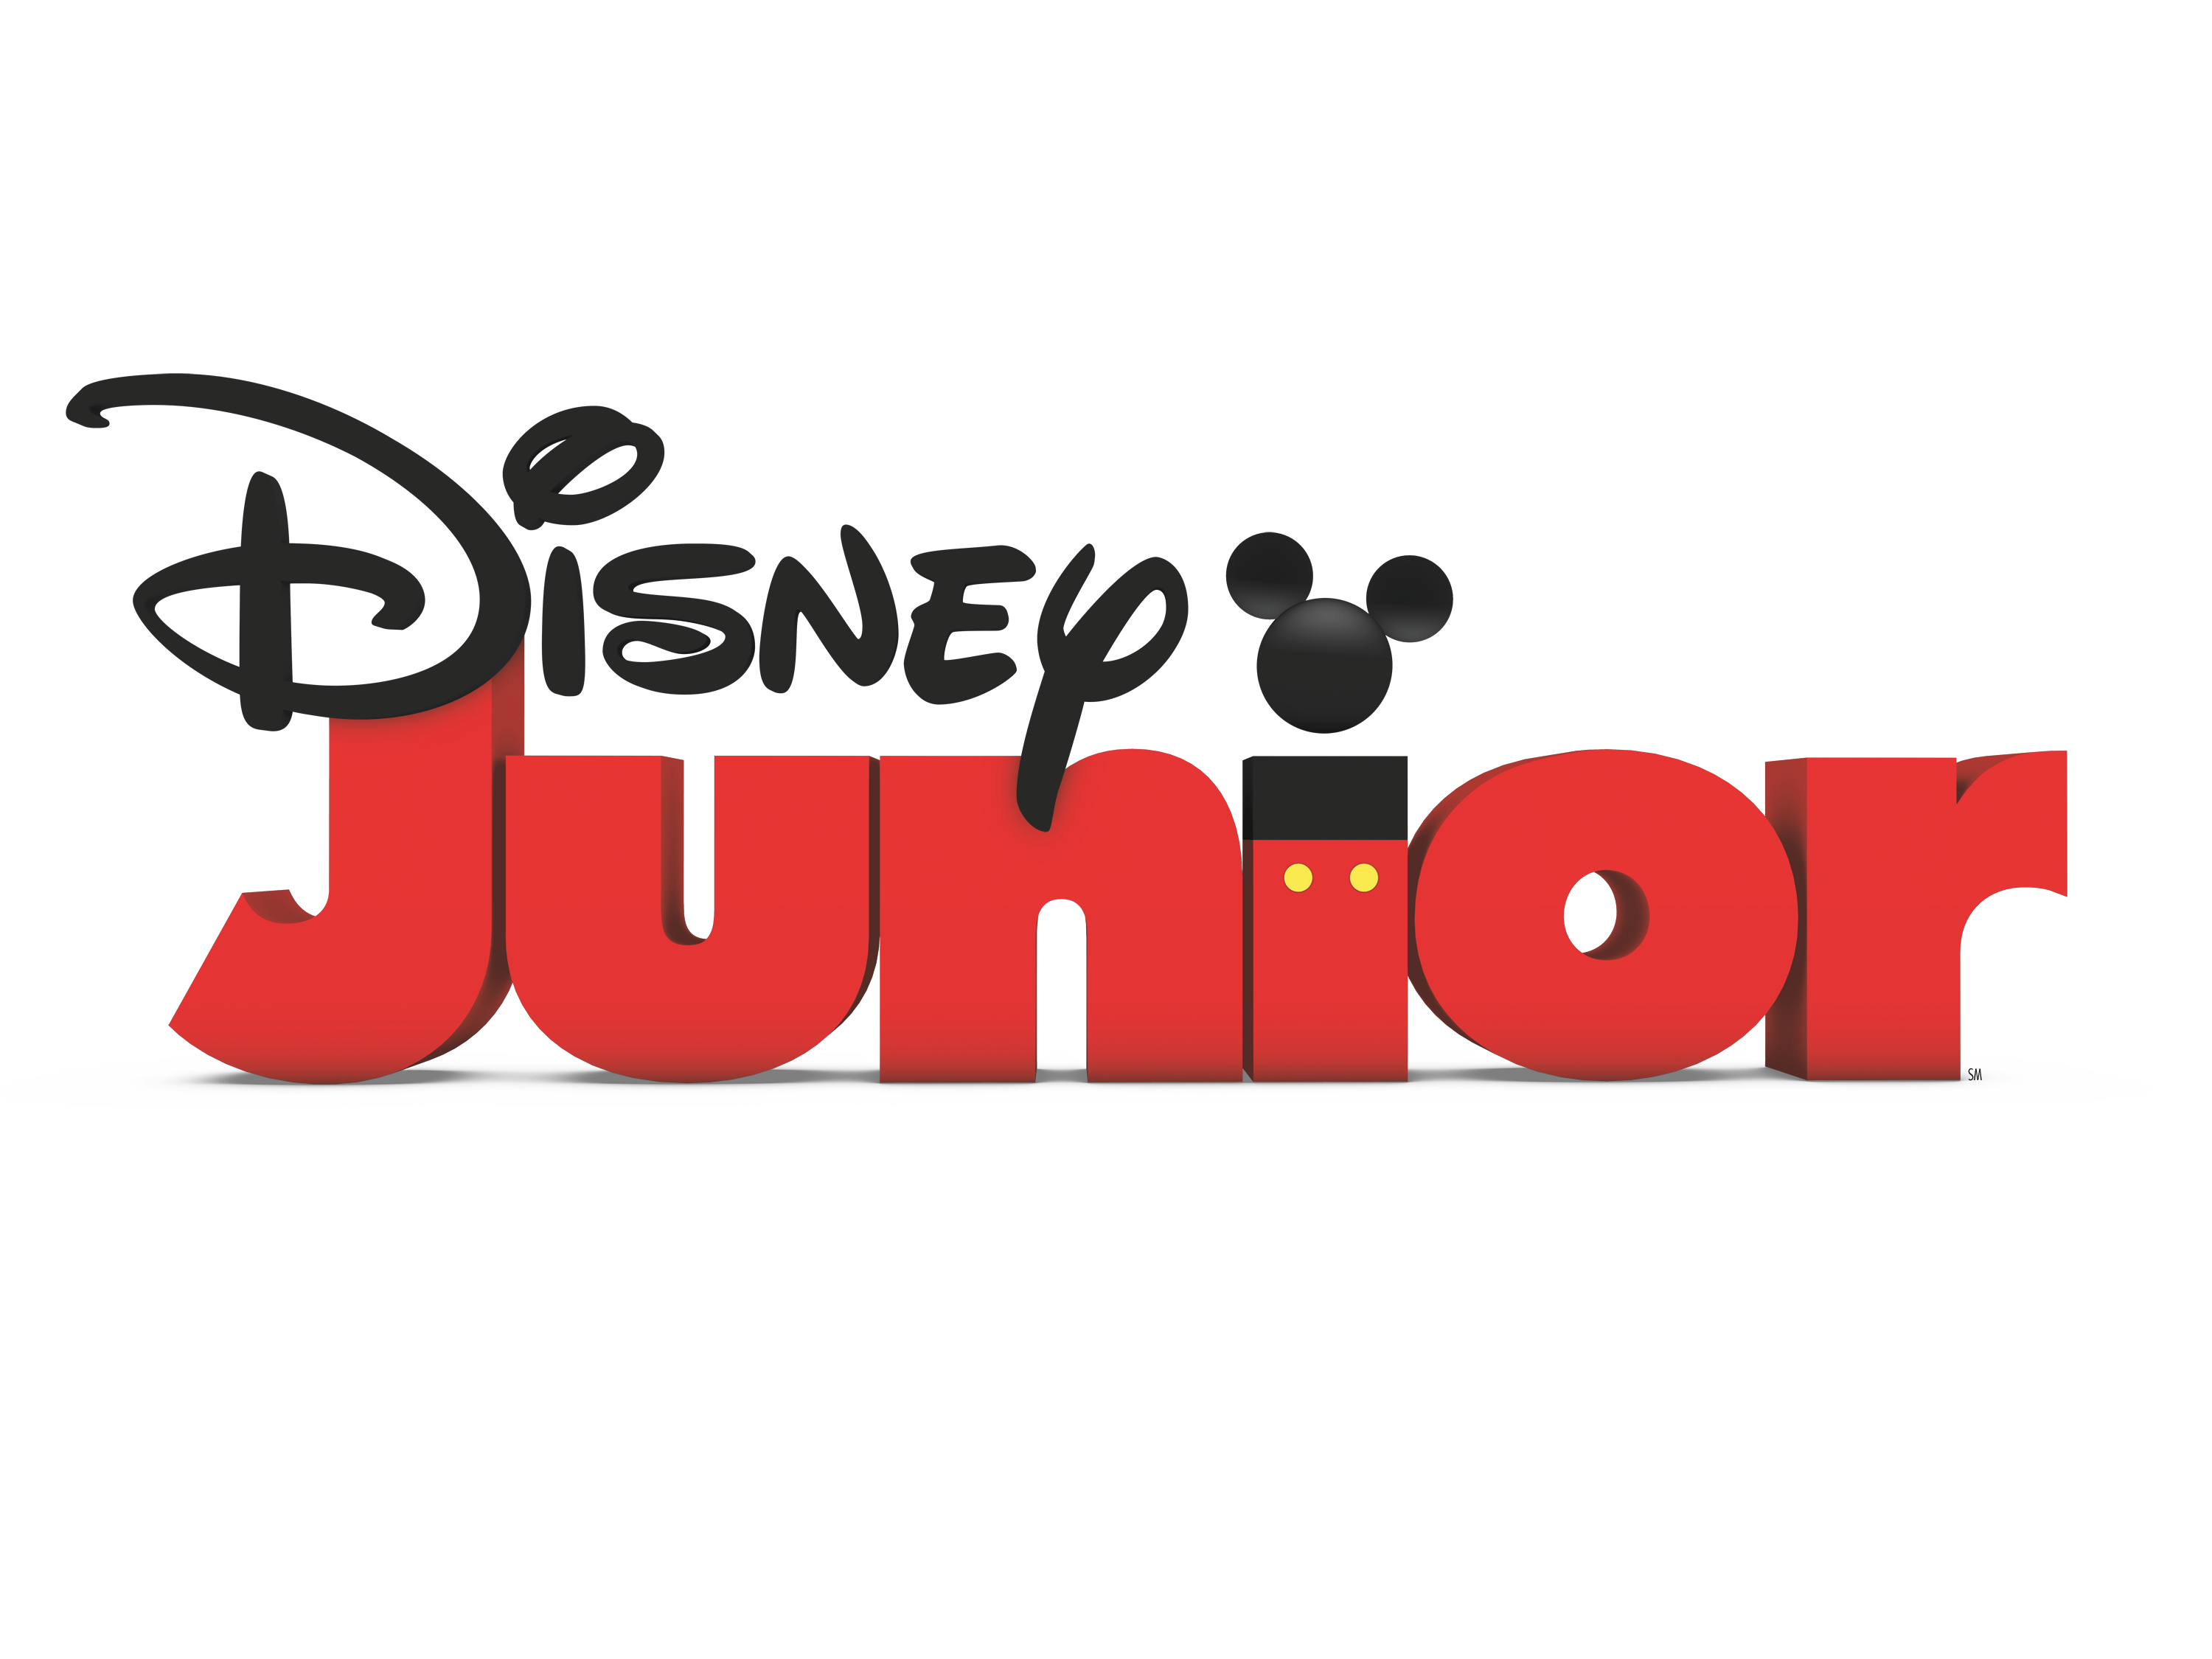 Disney junior logo png. Wake up and go